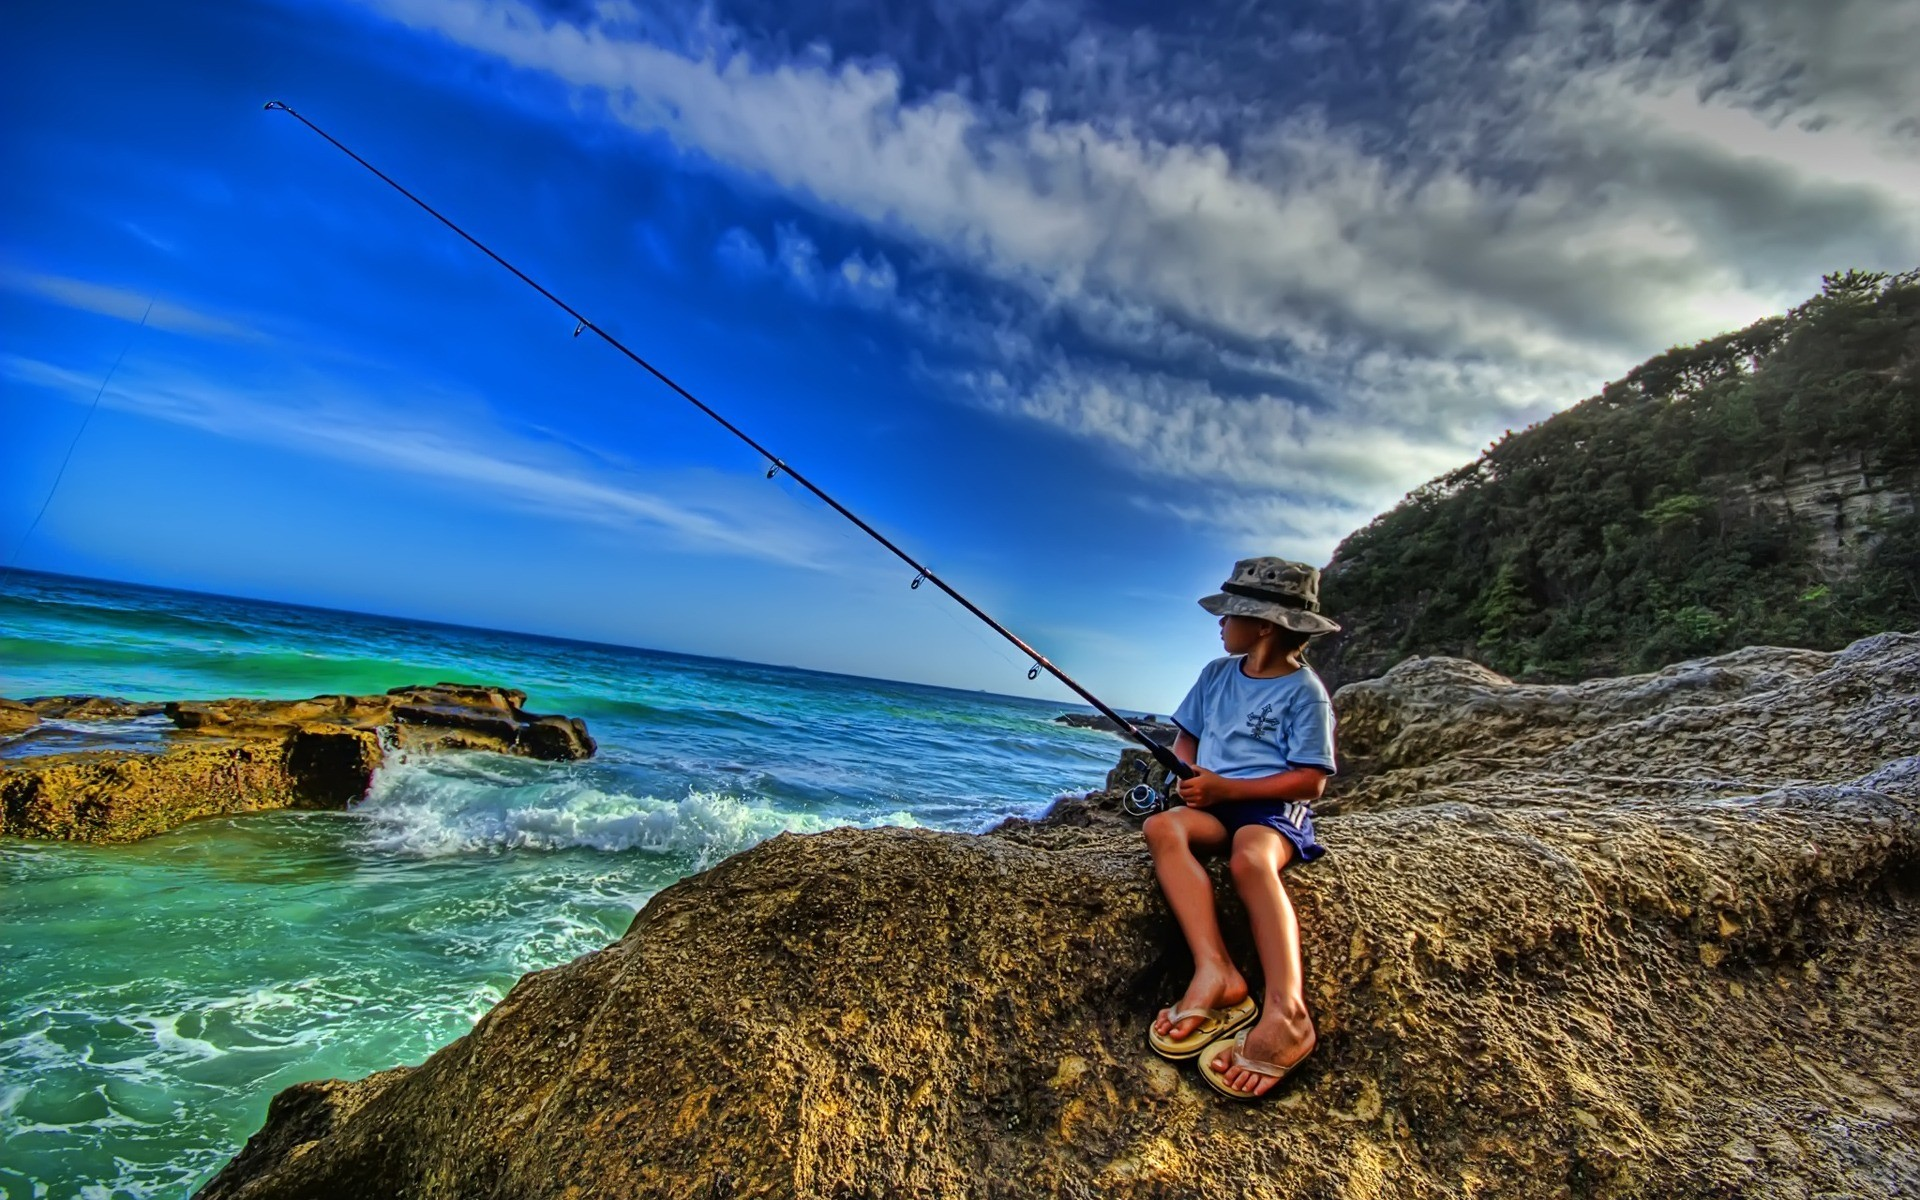 Saltwater Fishing Wallpaper Desktop 62 Images